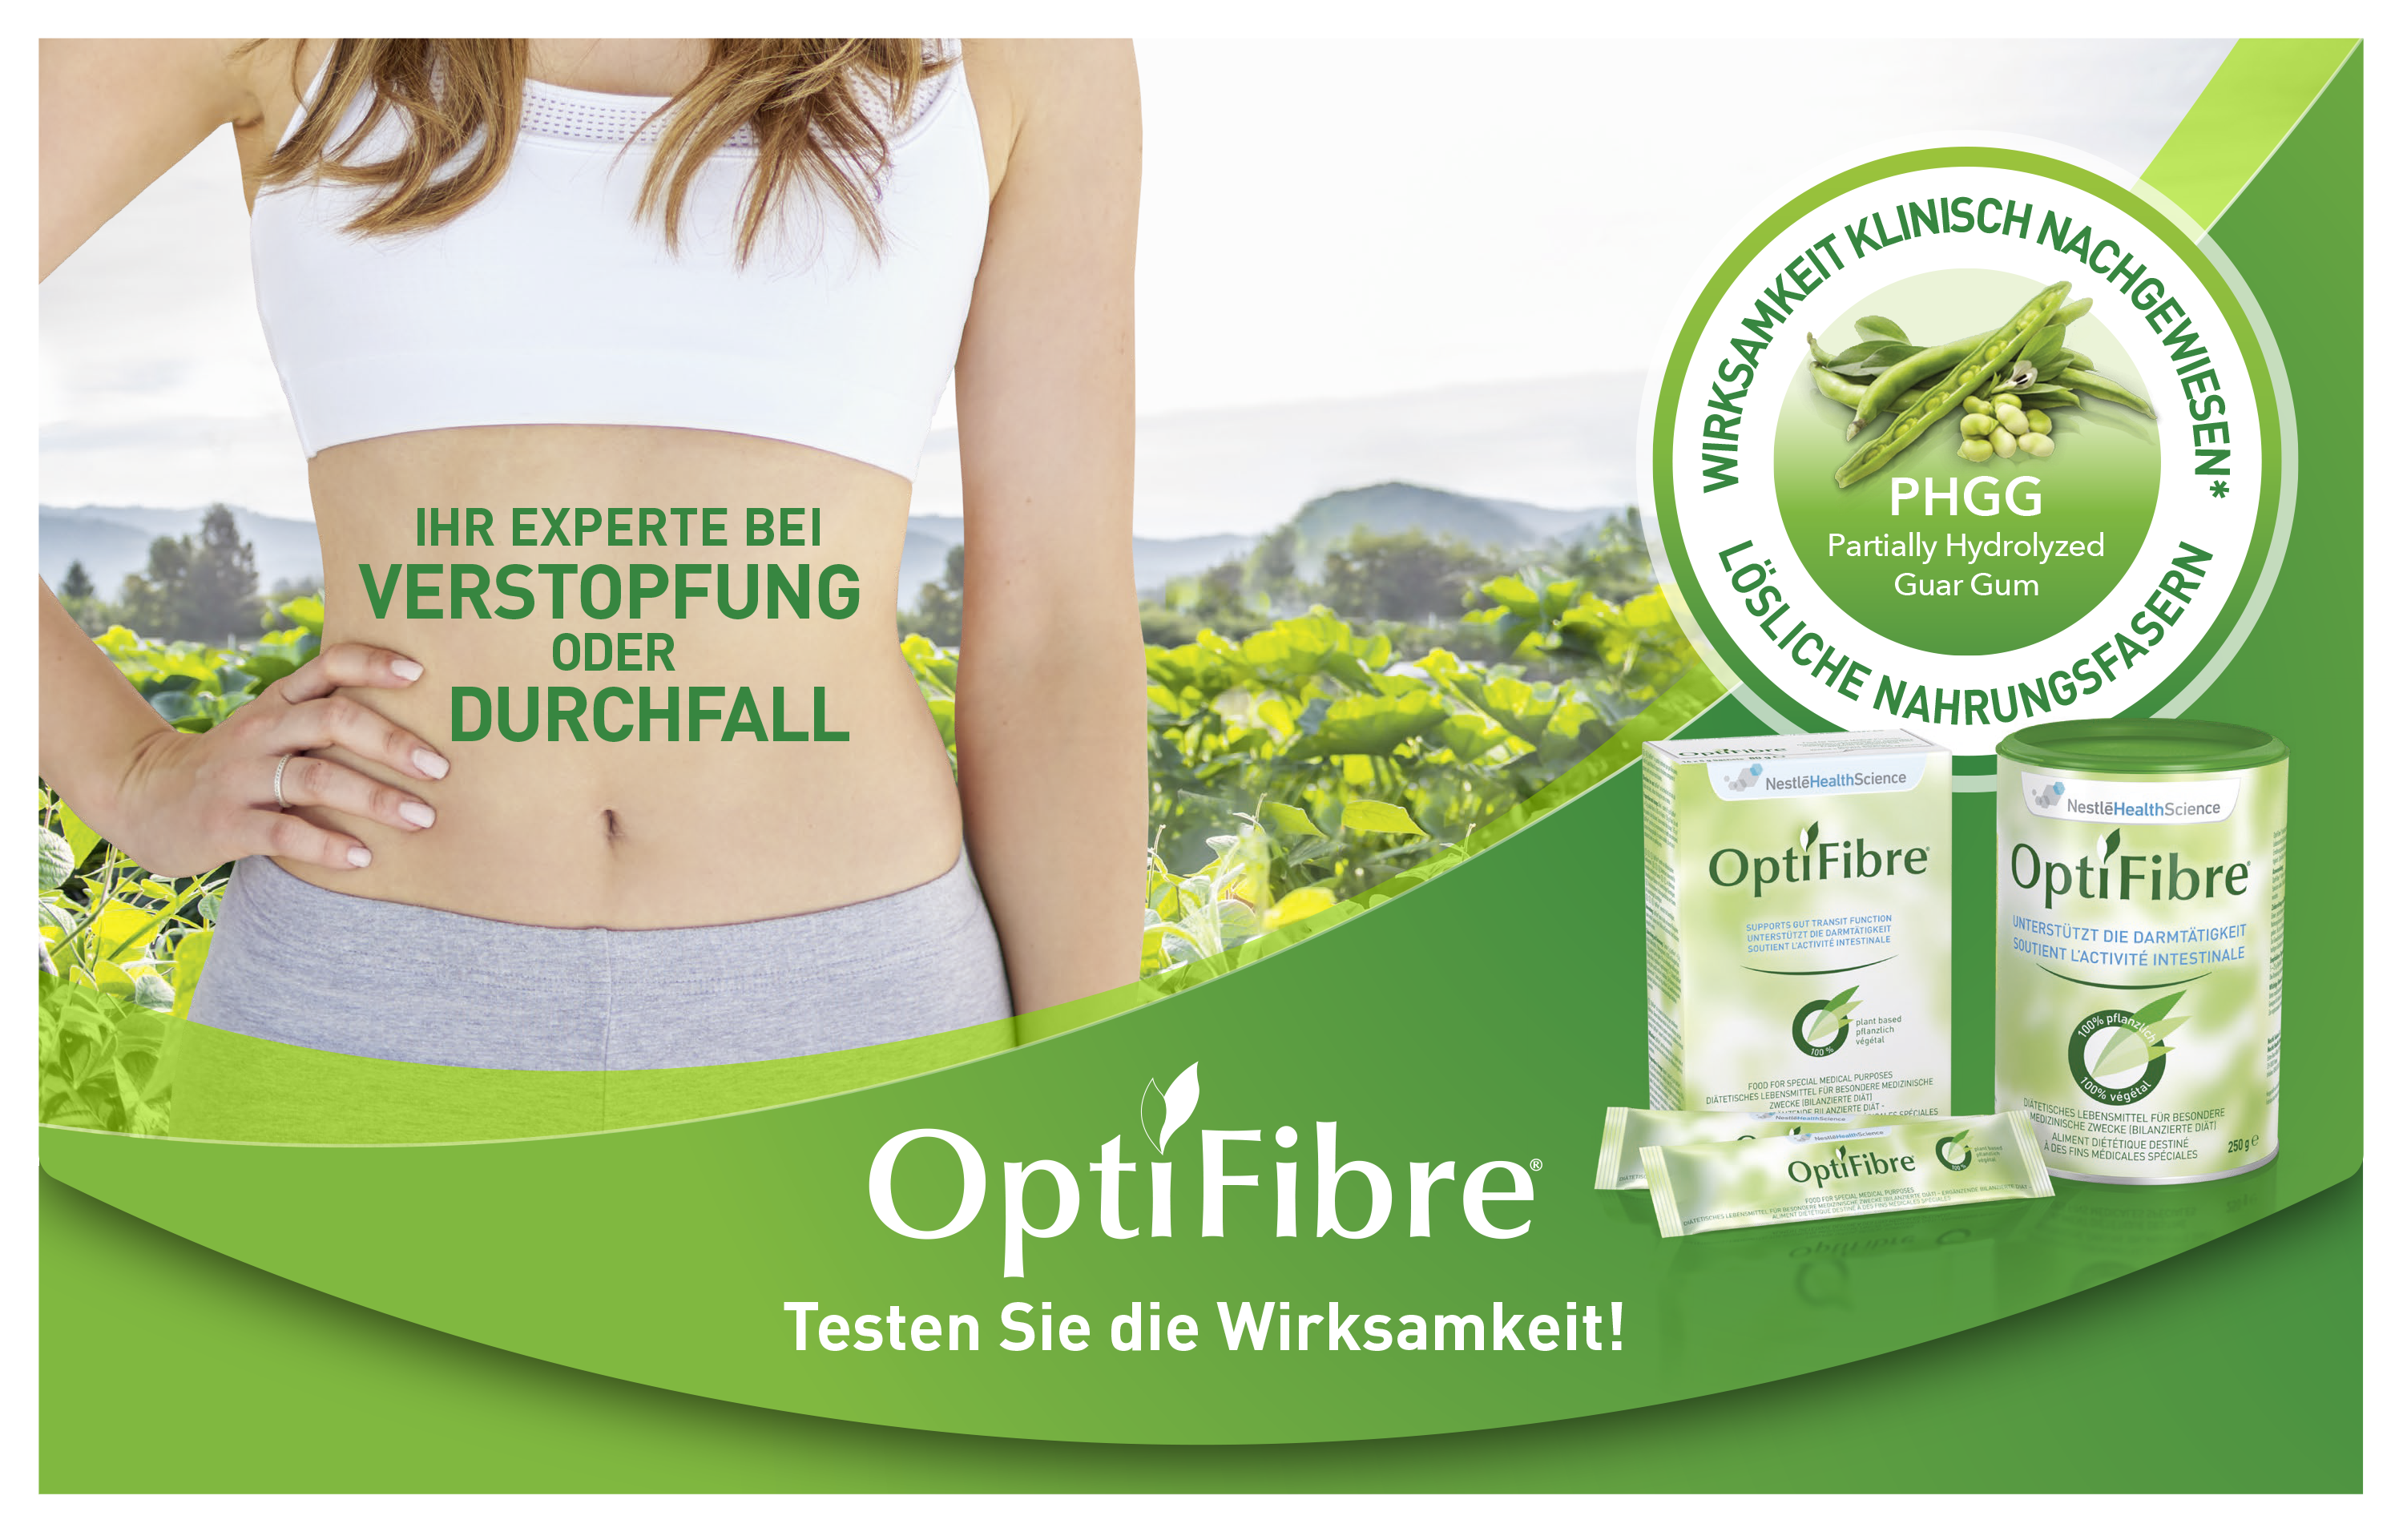 OptiFibre®, Gratismuster